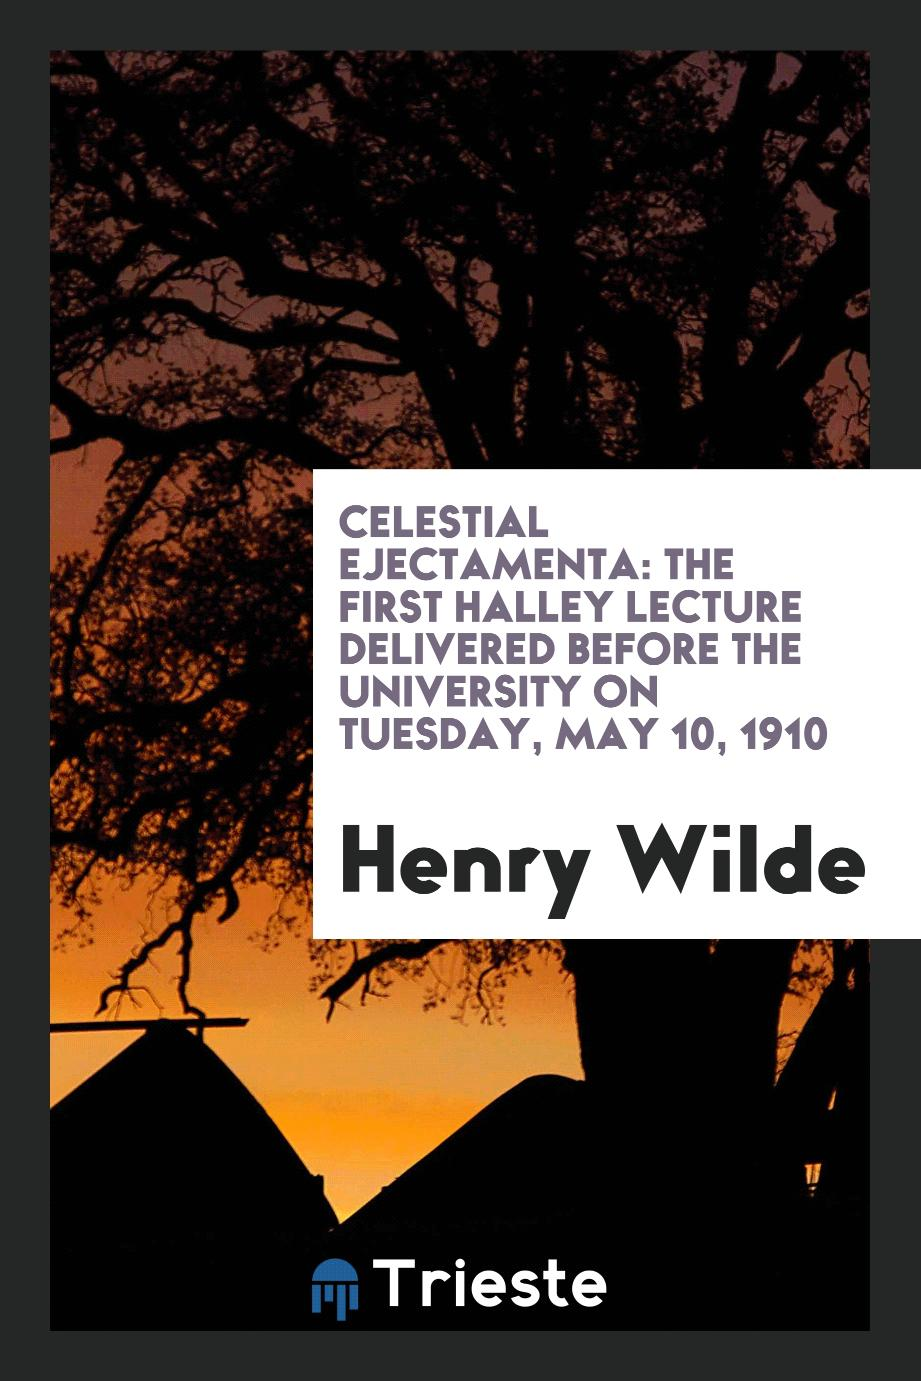 Celestial Ejectamenta: The First Halley Lecture Delivered Before the University on tuesday, may 10, 1910